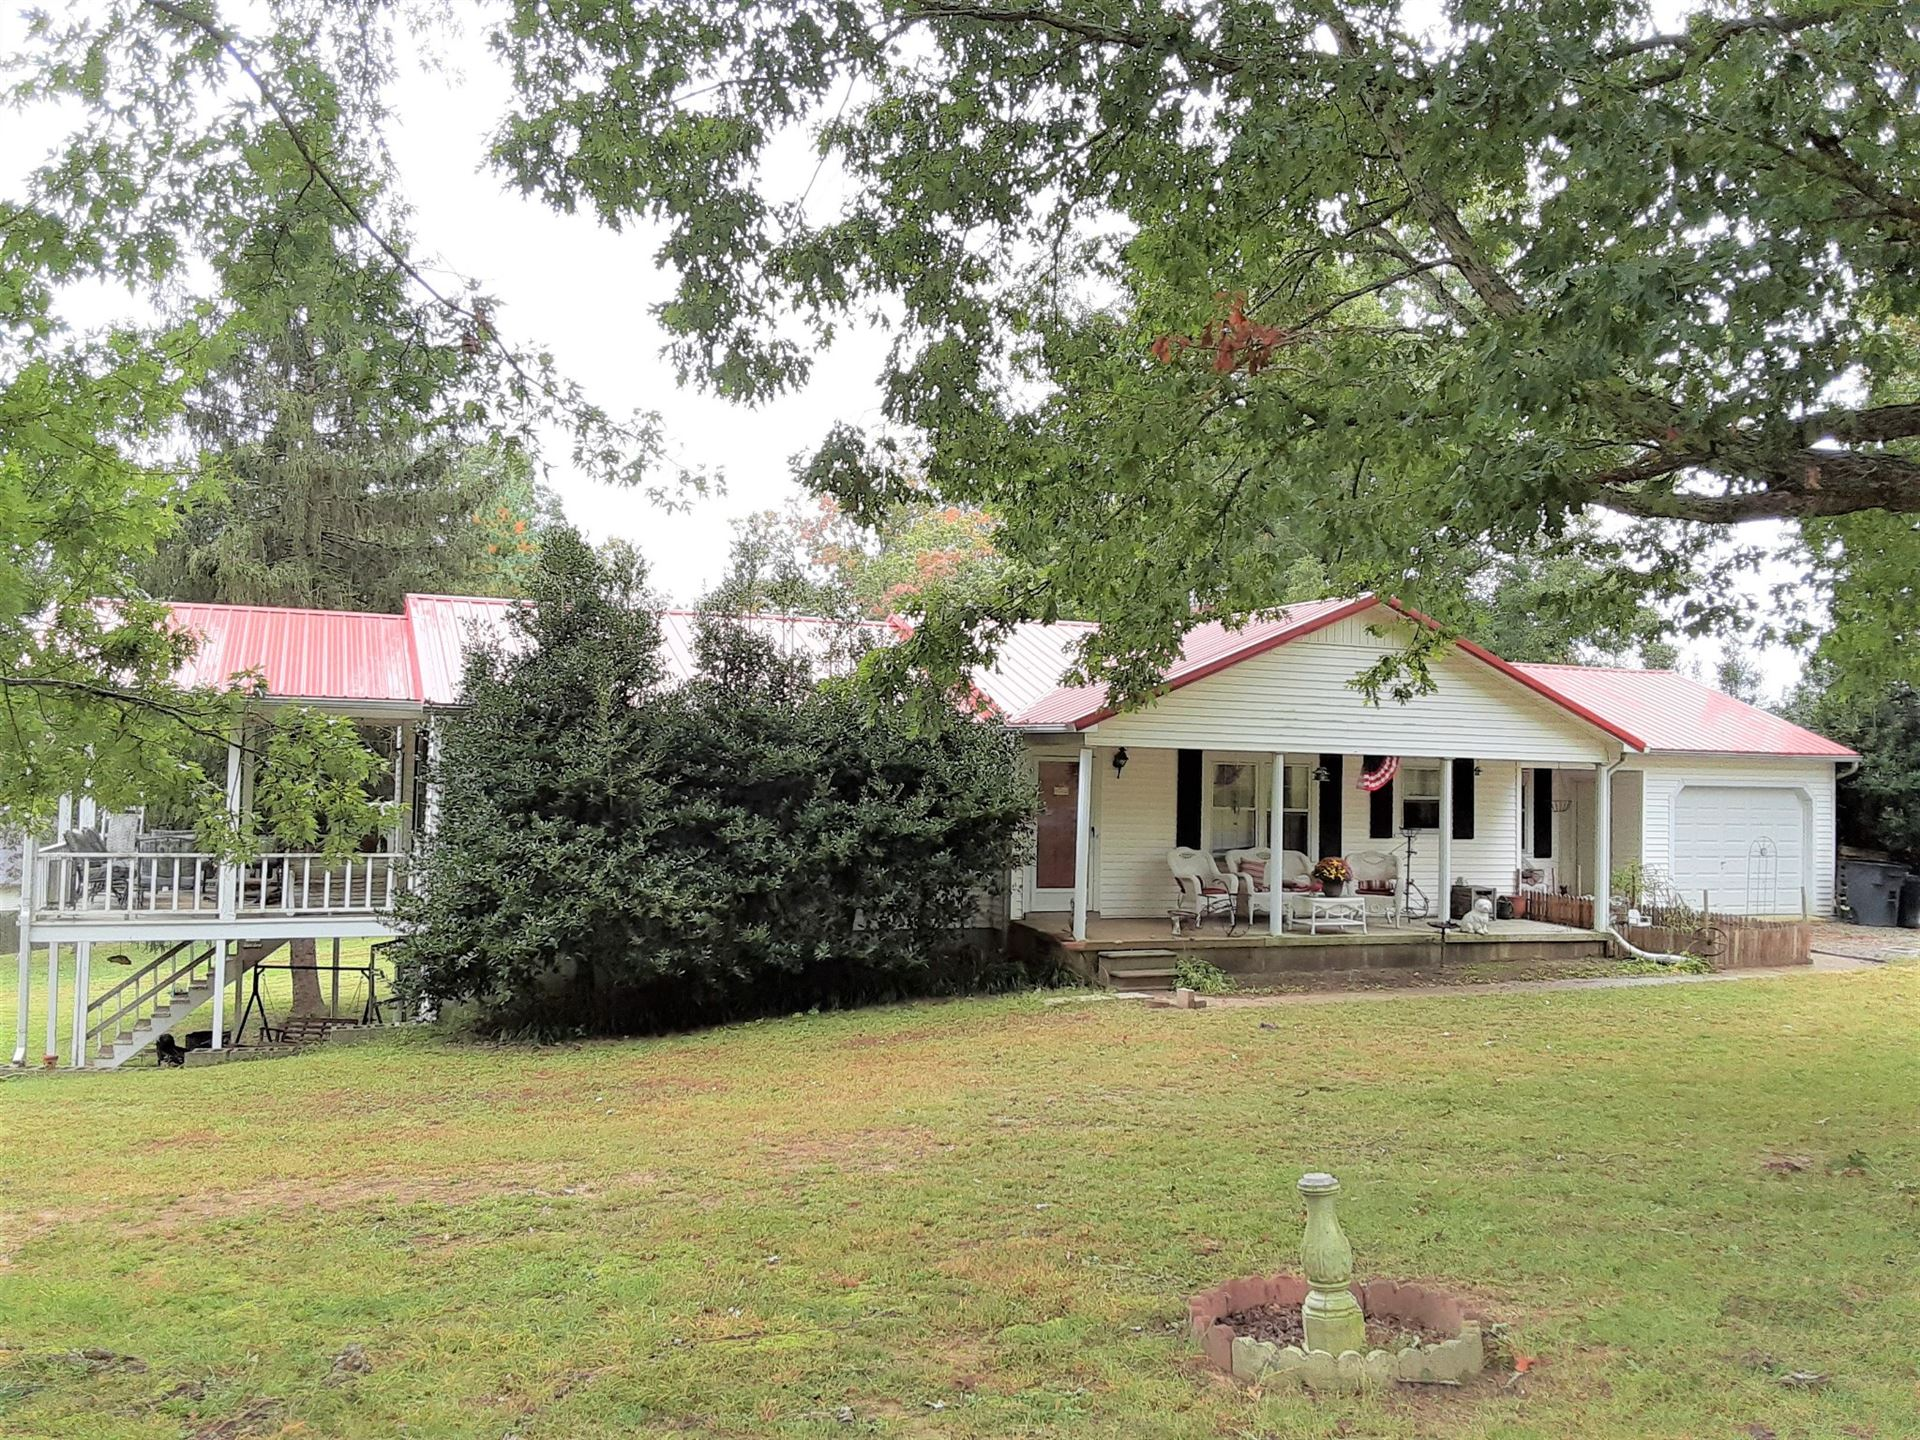 Photo of 1345 Sayles Cir, Lawrenceburg, TN 38464 (MLS # 2197488)